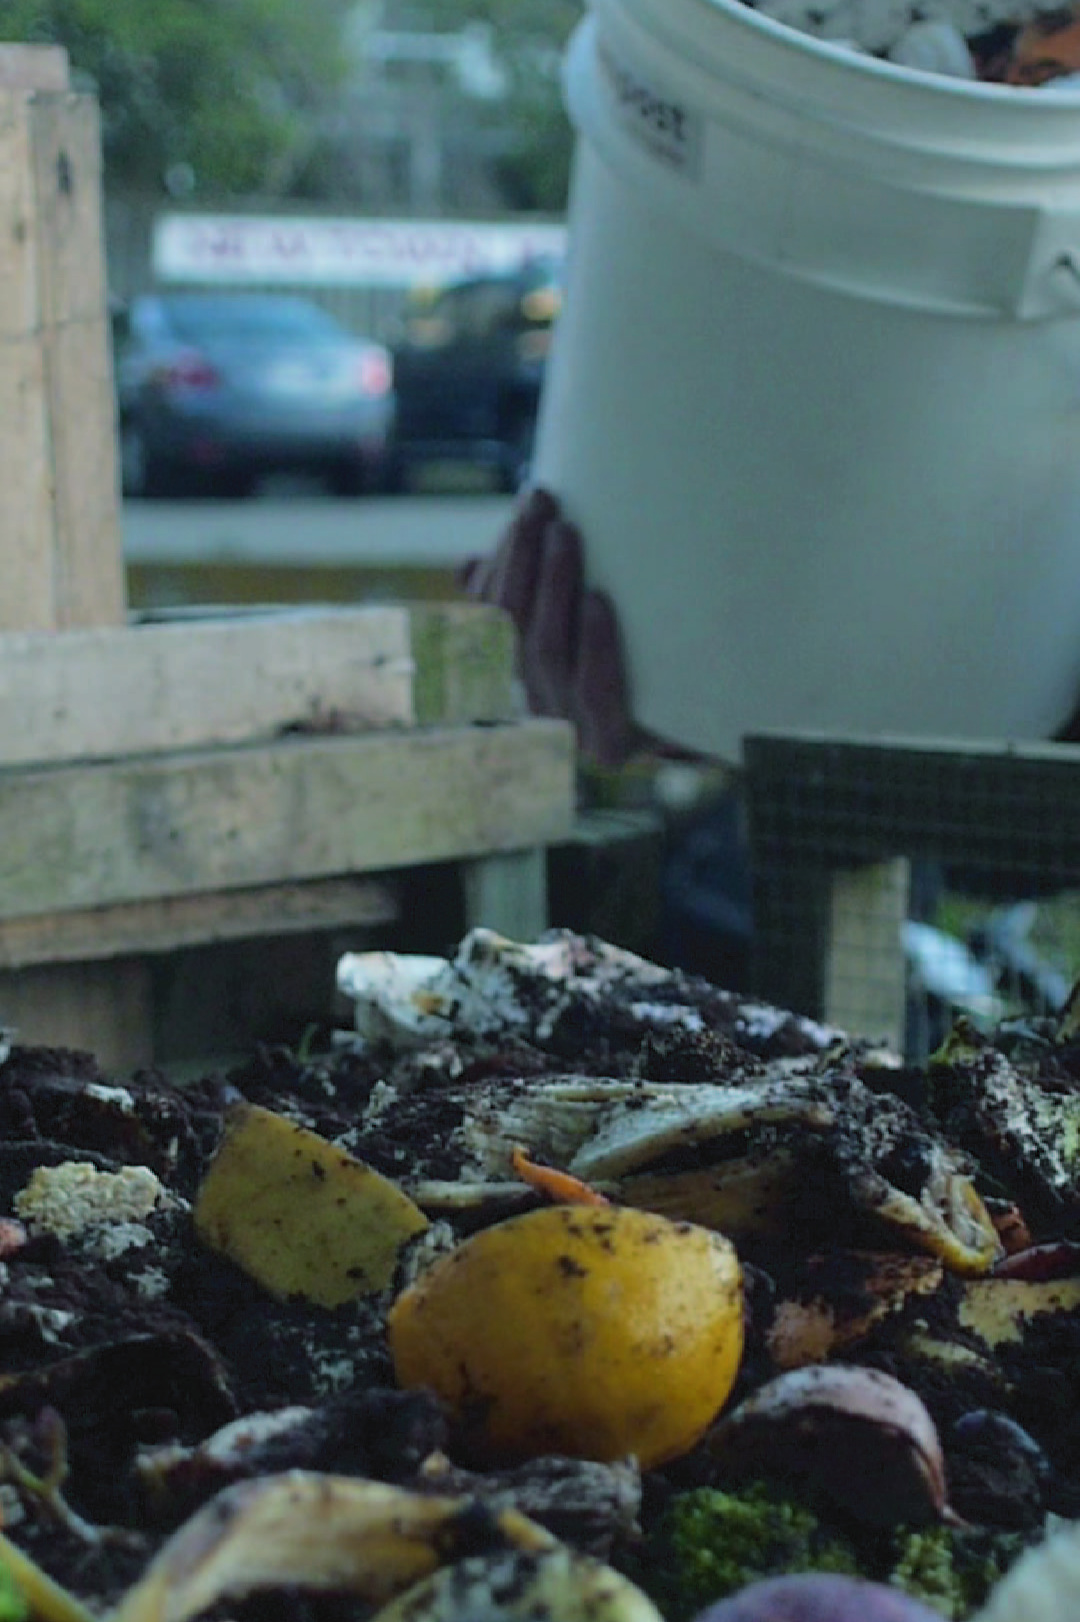 We are on a mission to see communities recycling their organic waste and growing nutrient dense food. -